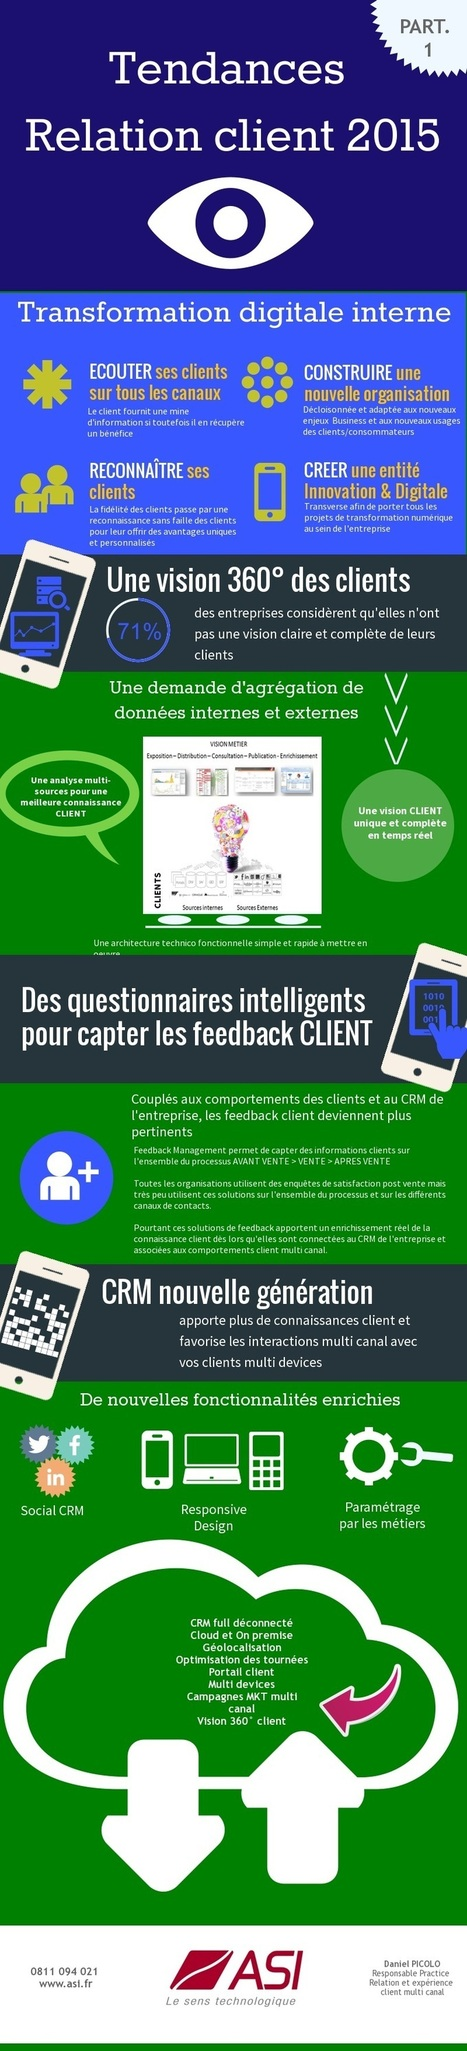 Infographie - Tendances Relation client 2015 - Part. 1 | B2B Marketing & LinkedIn | Scoop.it